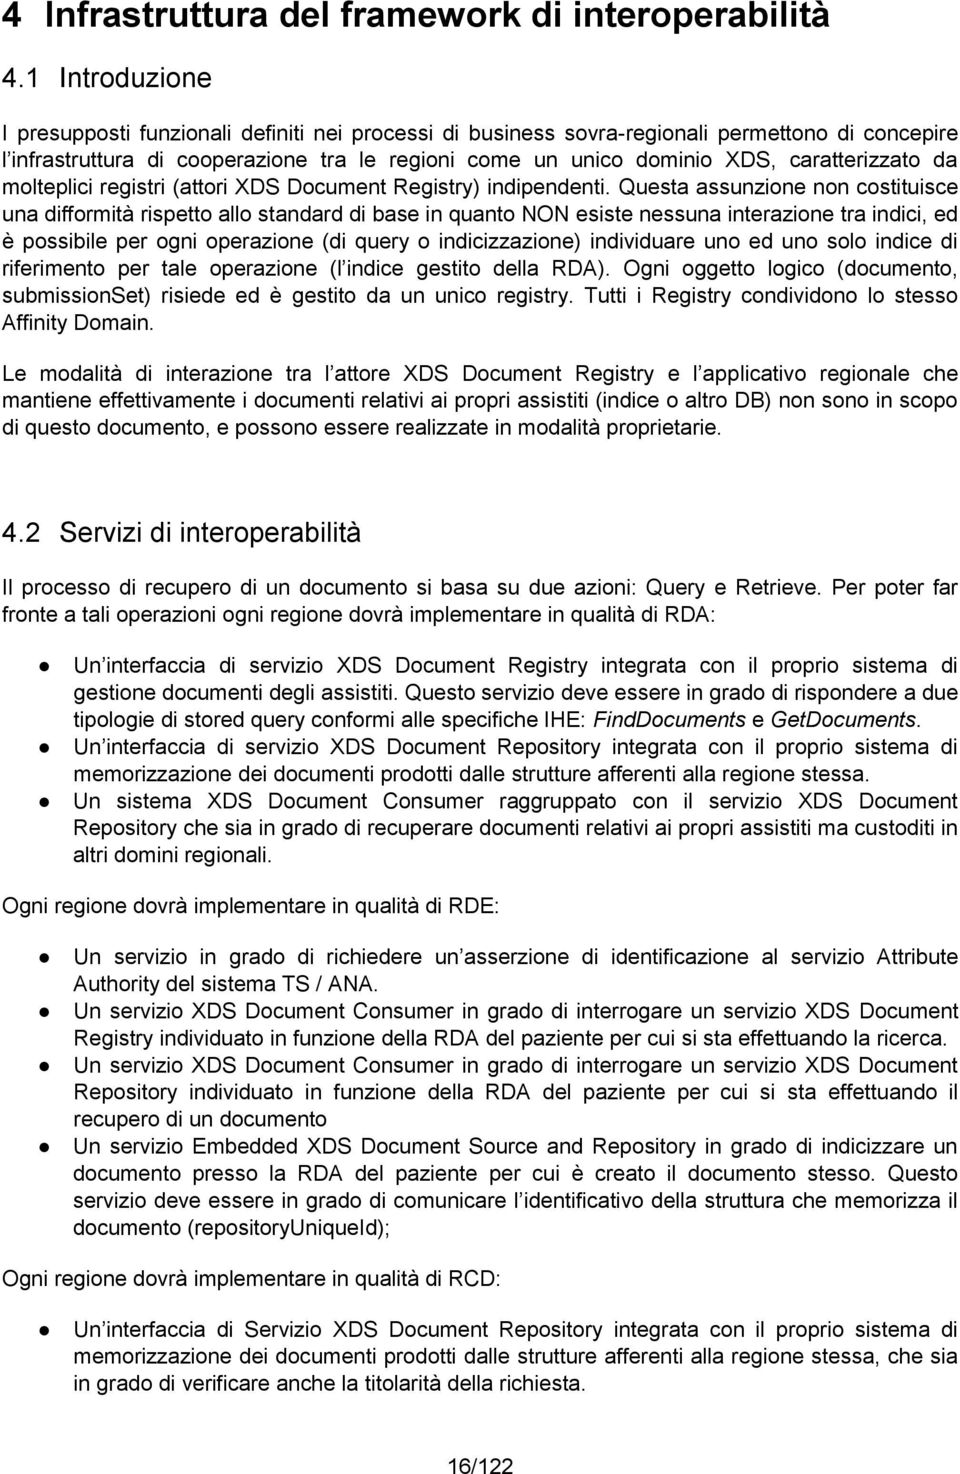 da molteplici registri (attori XDS Document Registry) indipendenti.